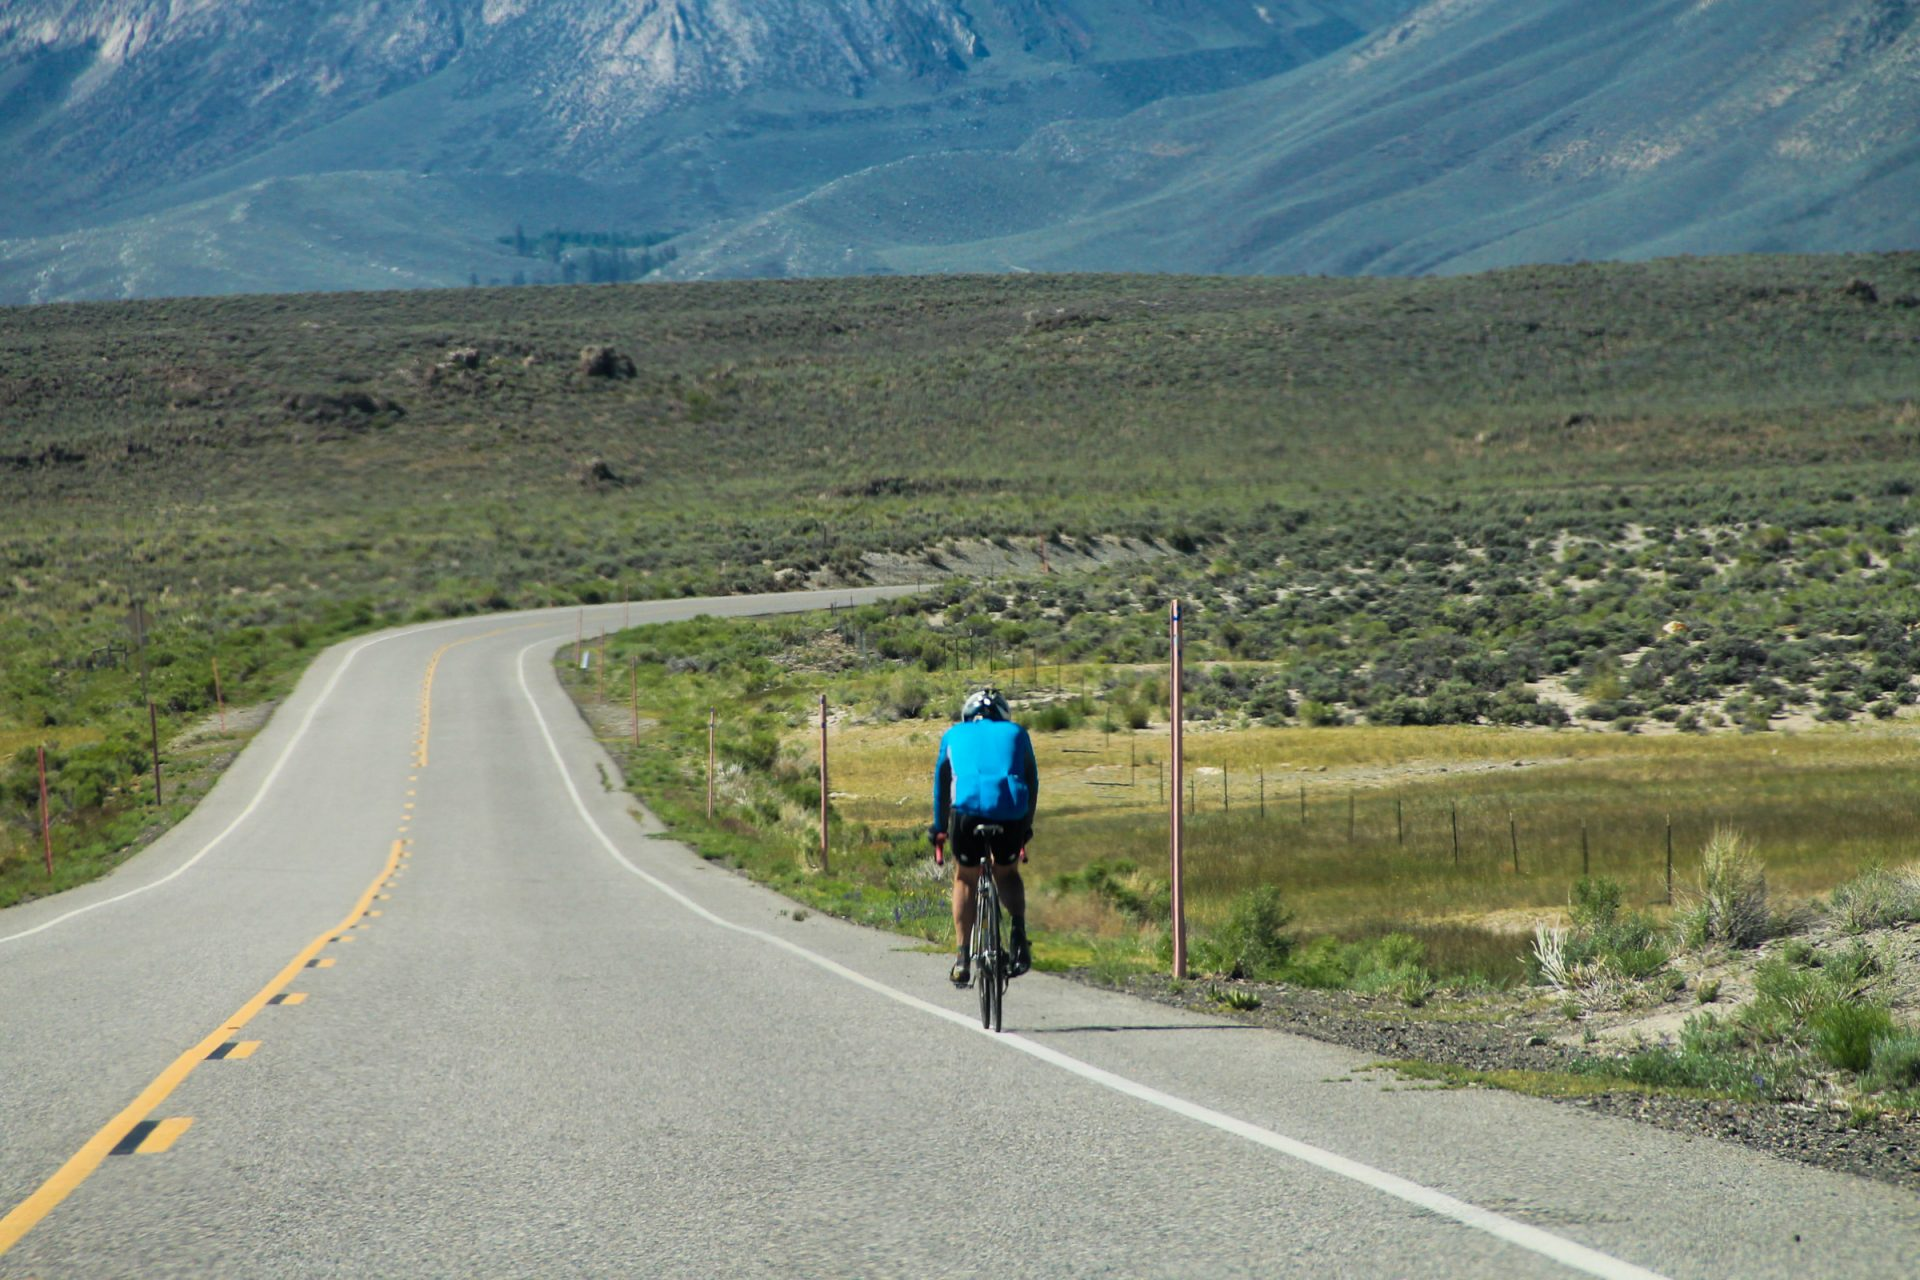 Cyclist on Road Towards Mountains